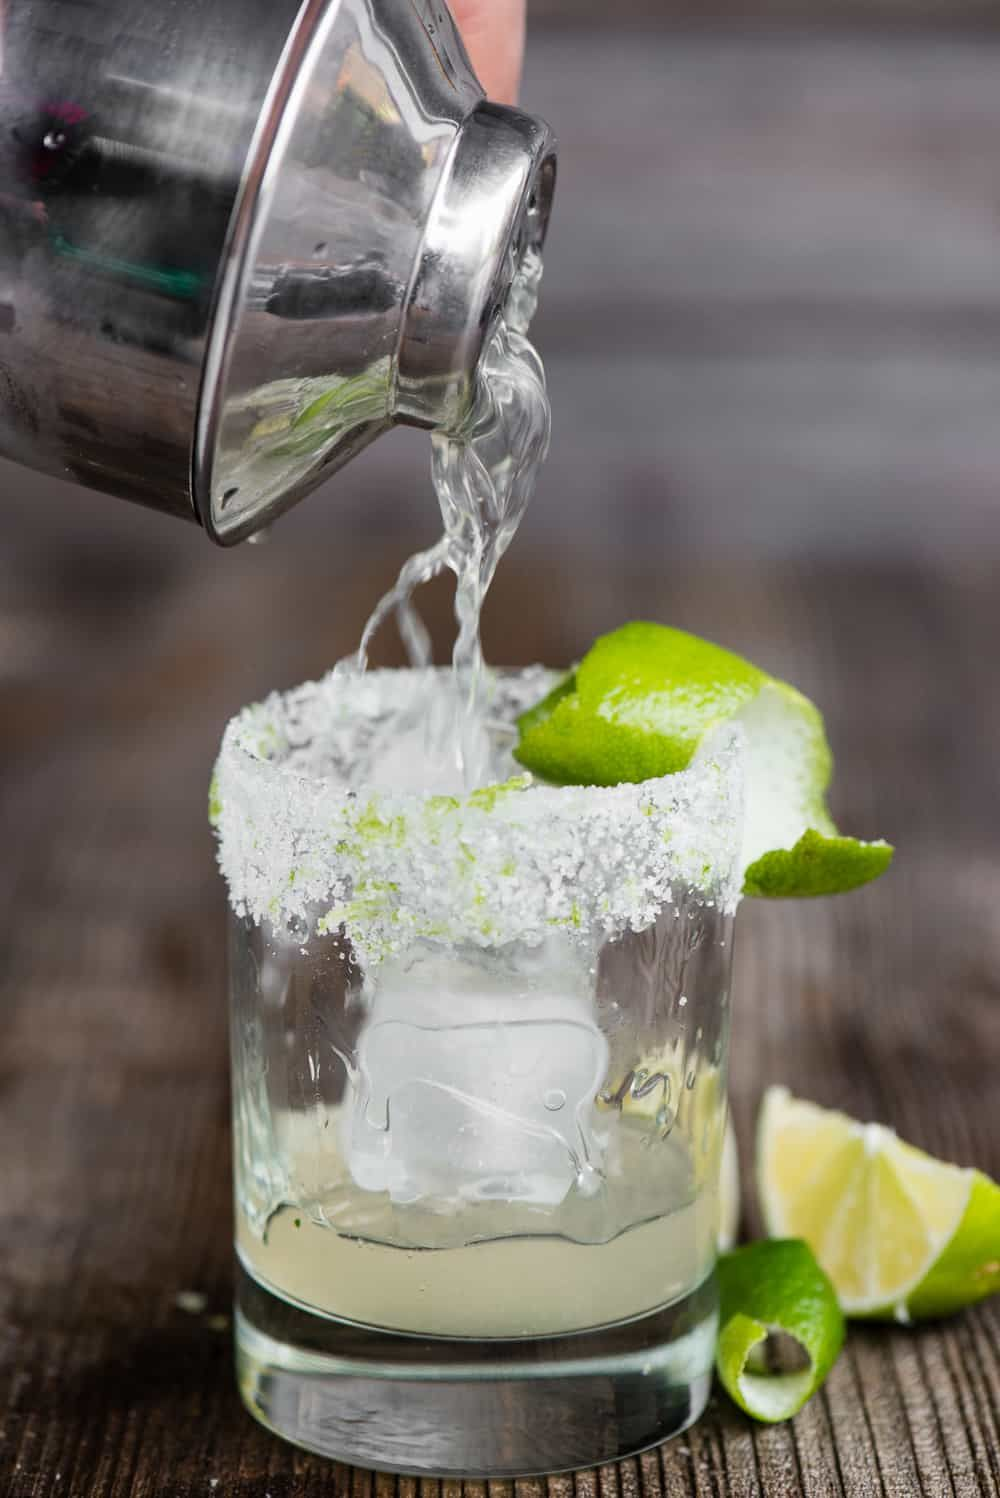 The most perfect classic Margarita recipe is quick and easy to make. This lip smacking tequila cocktail served over ice is the best drink!